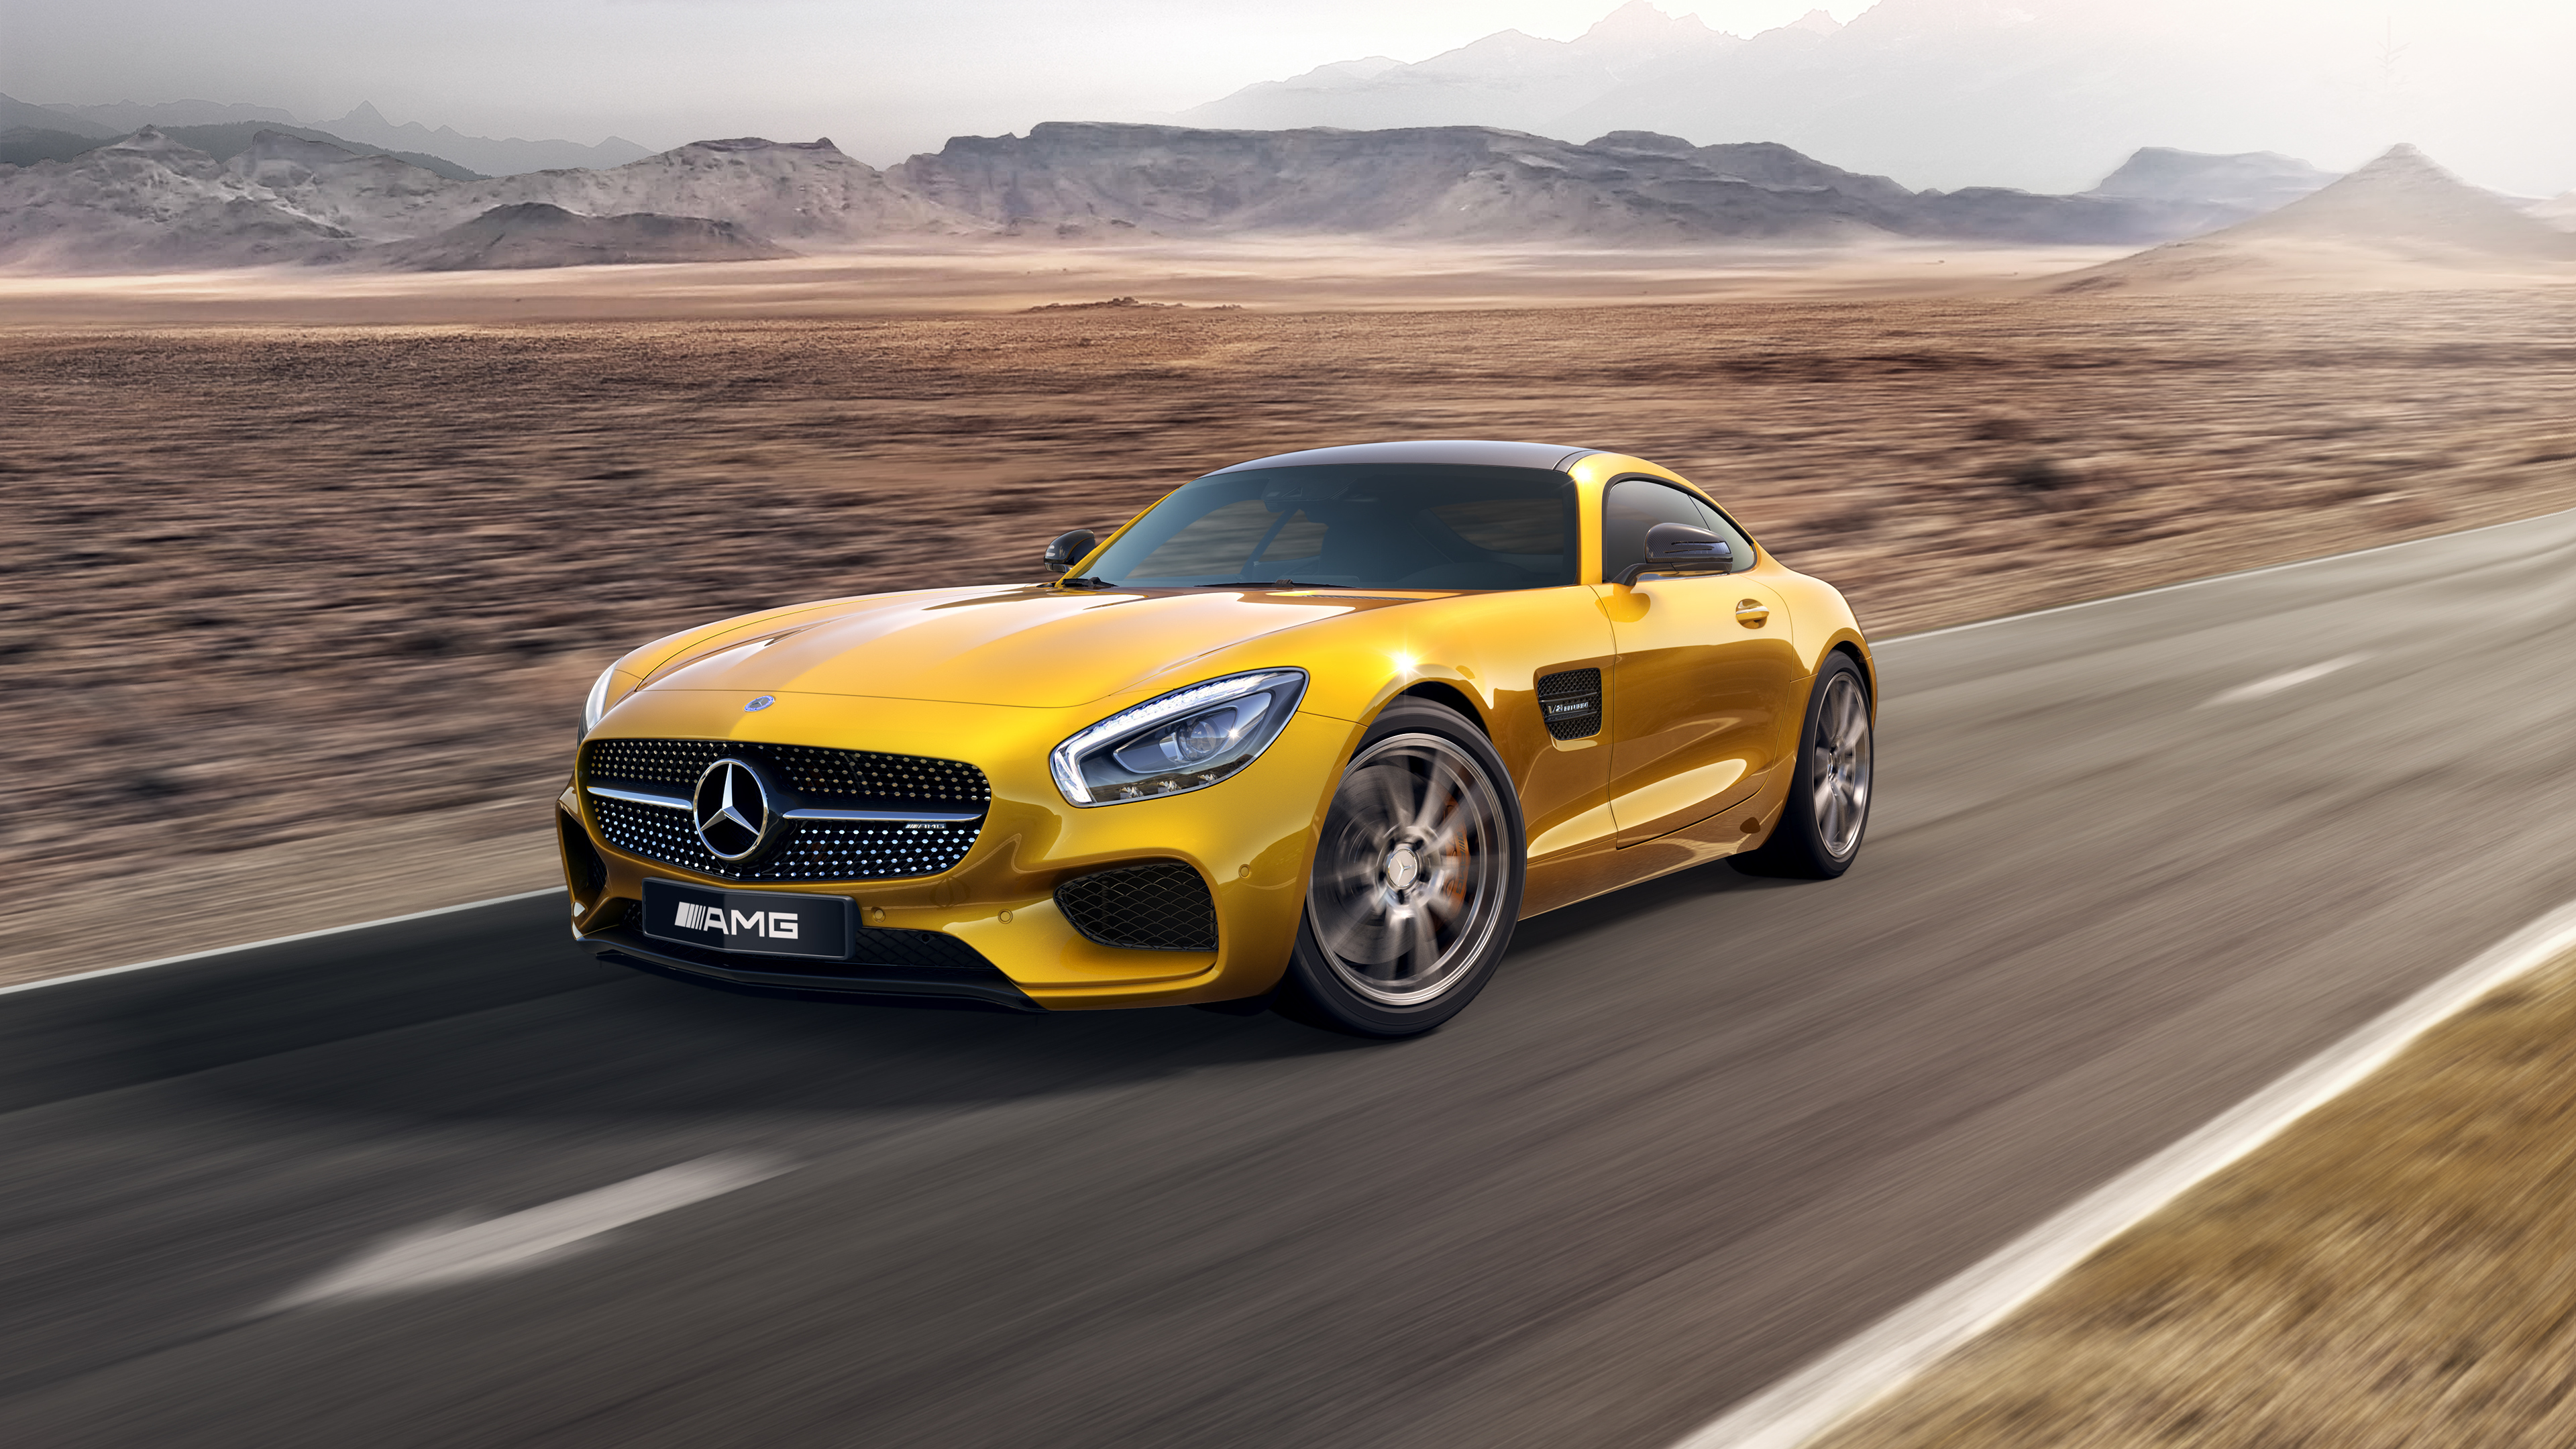 yellow mercedes benz amg gt 4k 1559764582 - Yellow Mercedes Benz Amg GT 4k - mercedes wallpapers, mercedes amg gtr wallpapers, hd-wallpapers, cars wallpapers, behance wallpapers, 4k-wallpapers, 2019 cars wallpapers